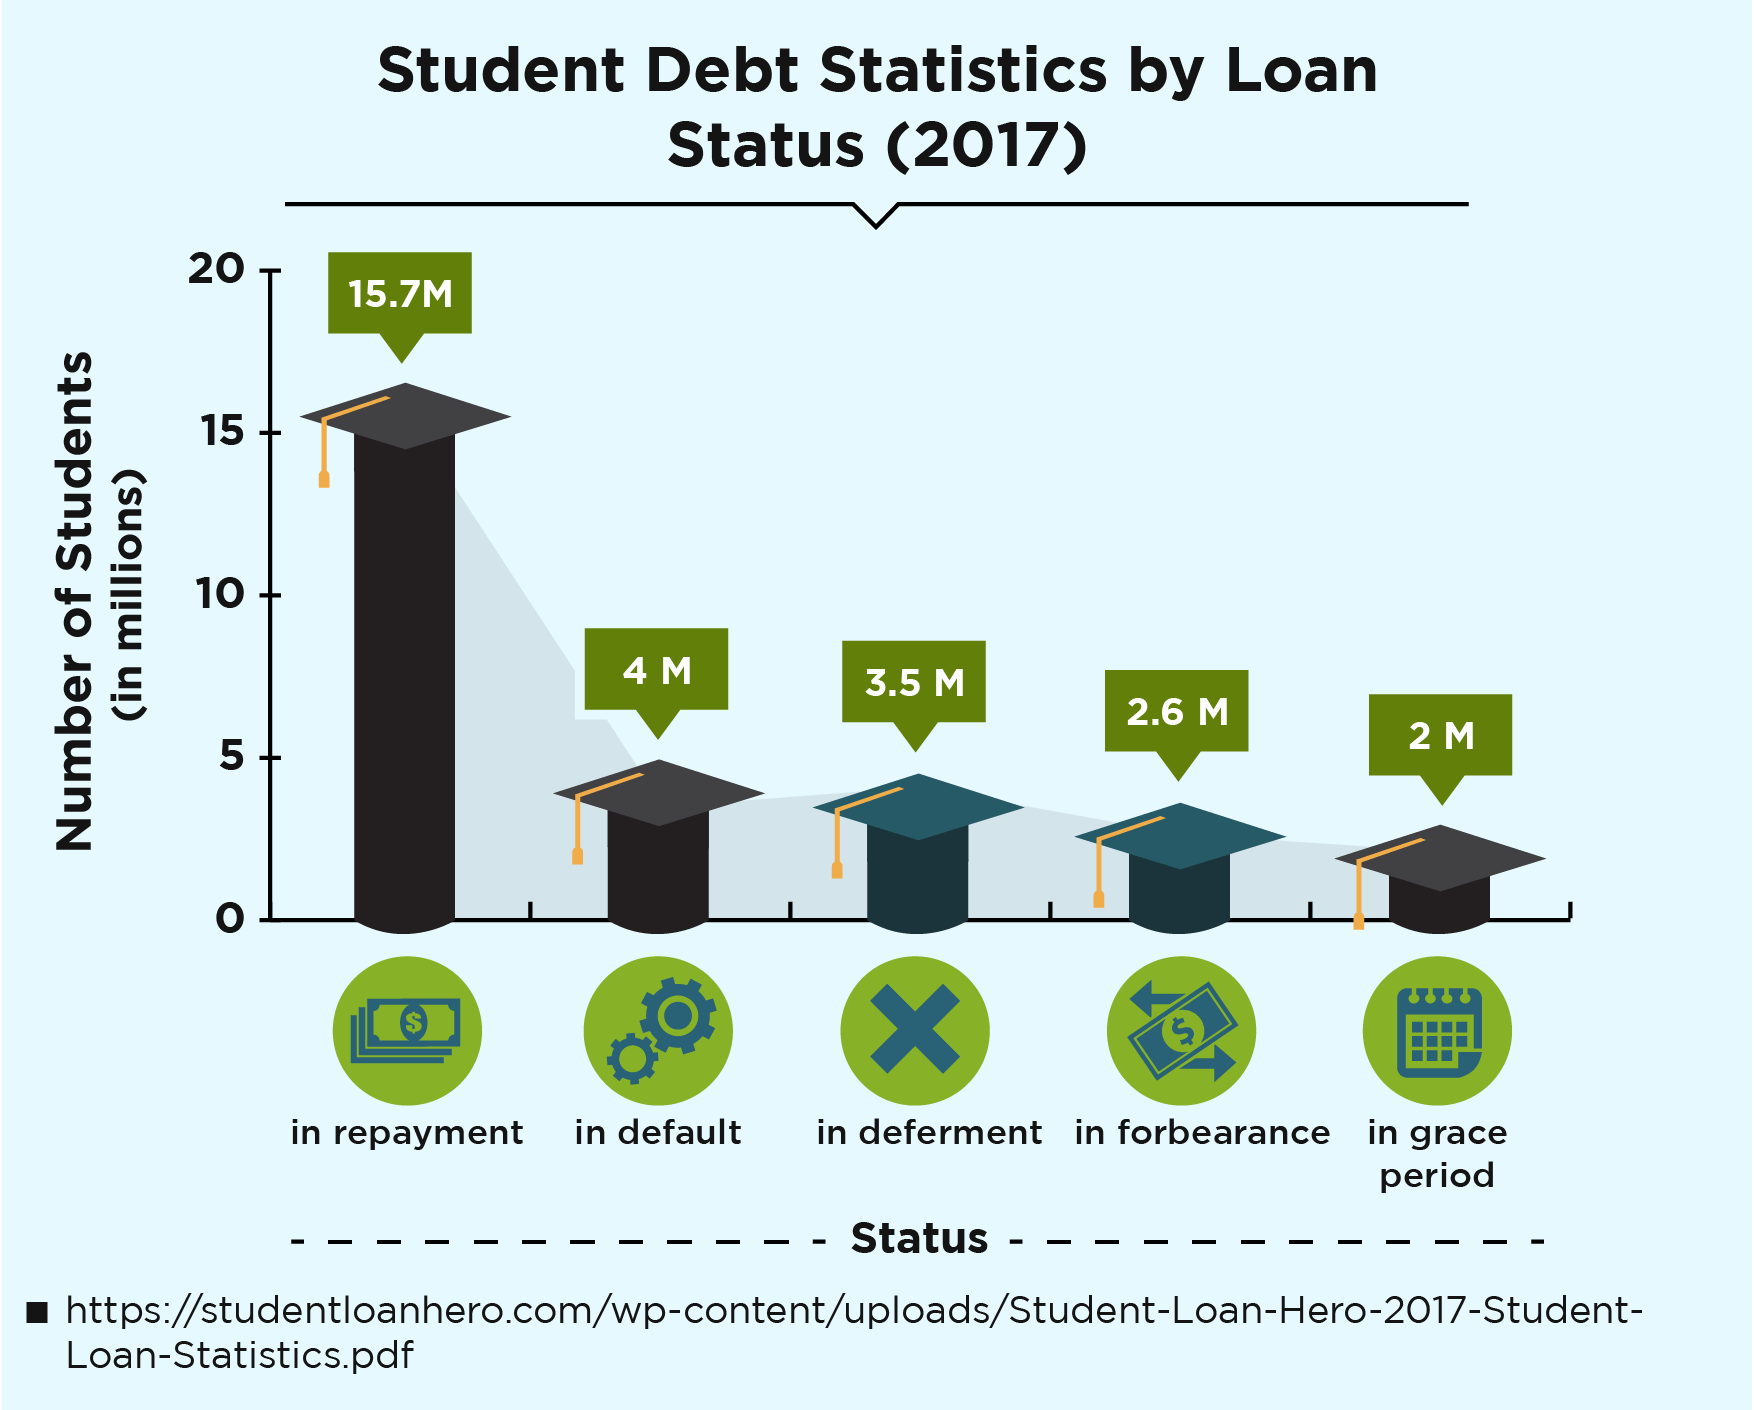 Student Debt Statistics by Loan Status (2017)